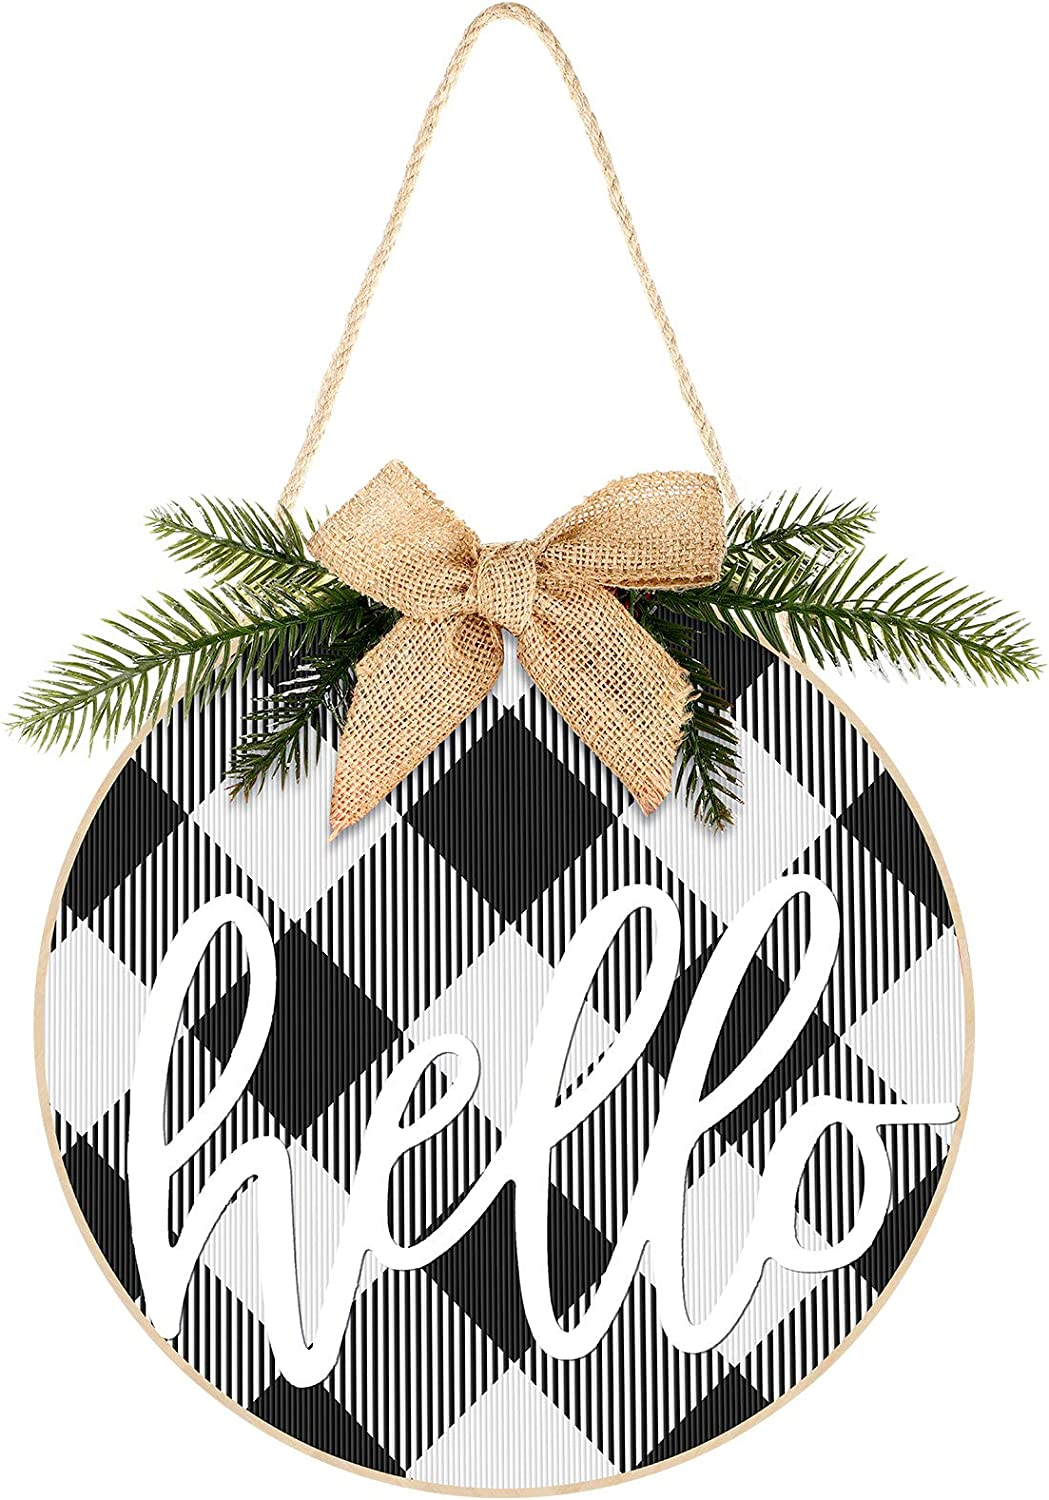 Christmas Wreath Hanging Sign Buffalo Plaid Wooden Door Hanger for Front Door Rustic Burlap Wooden Holiday Decor for Christmas Home Window Wall Farmhouse Decoration Hello